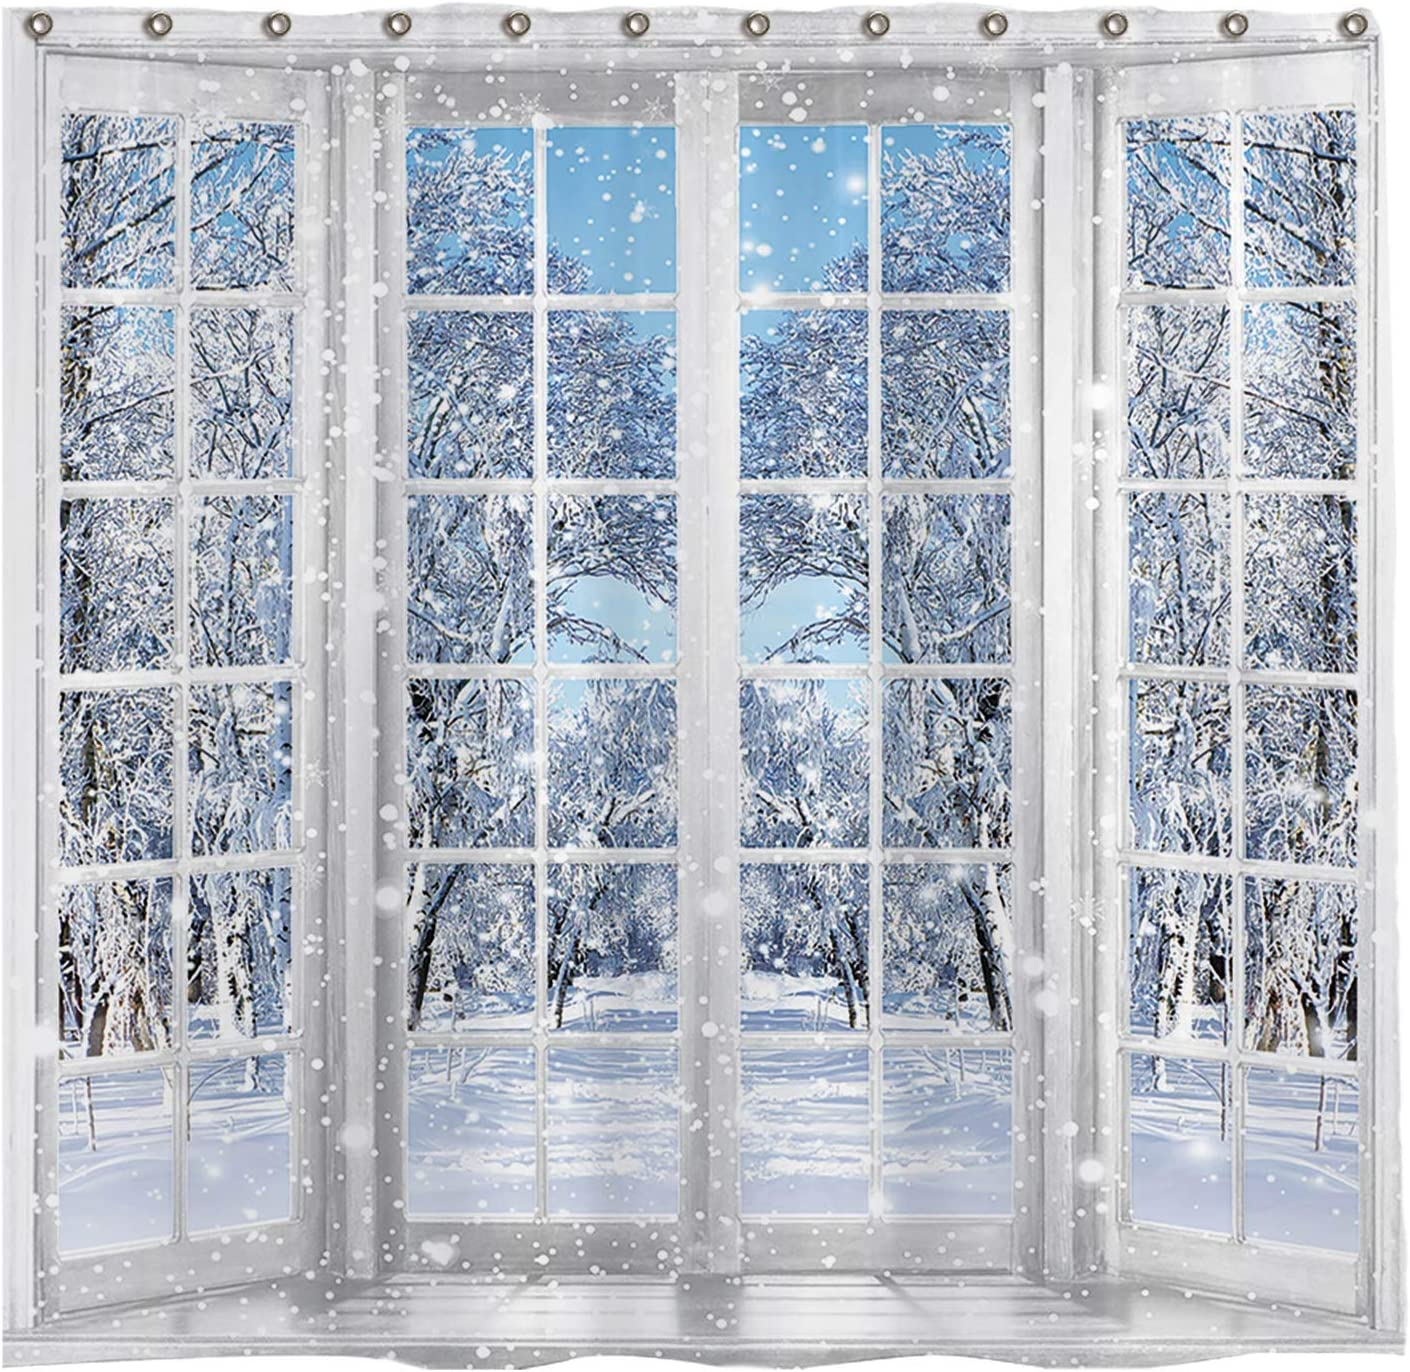 Allenjoy 72x72 inch Winter French Window Shower Curtain Set with 12 Hooks Beautiful Nature Snowy Scenery Bathroom Curtain Durable Waterproof Fabric Bathtub Sets Home Decor